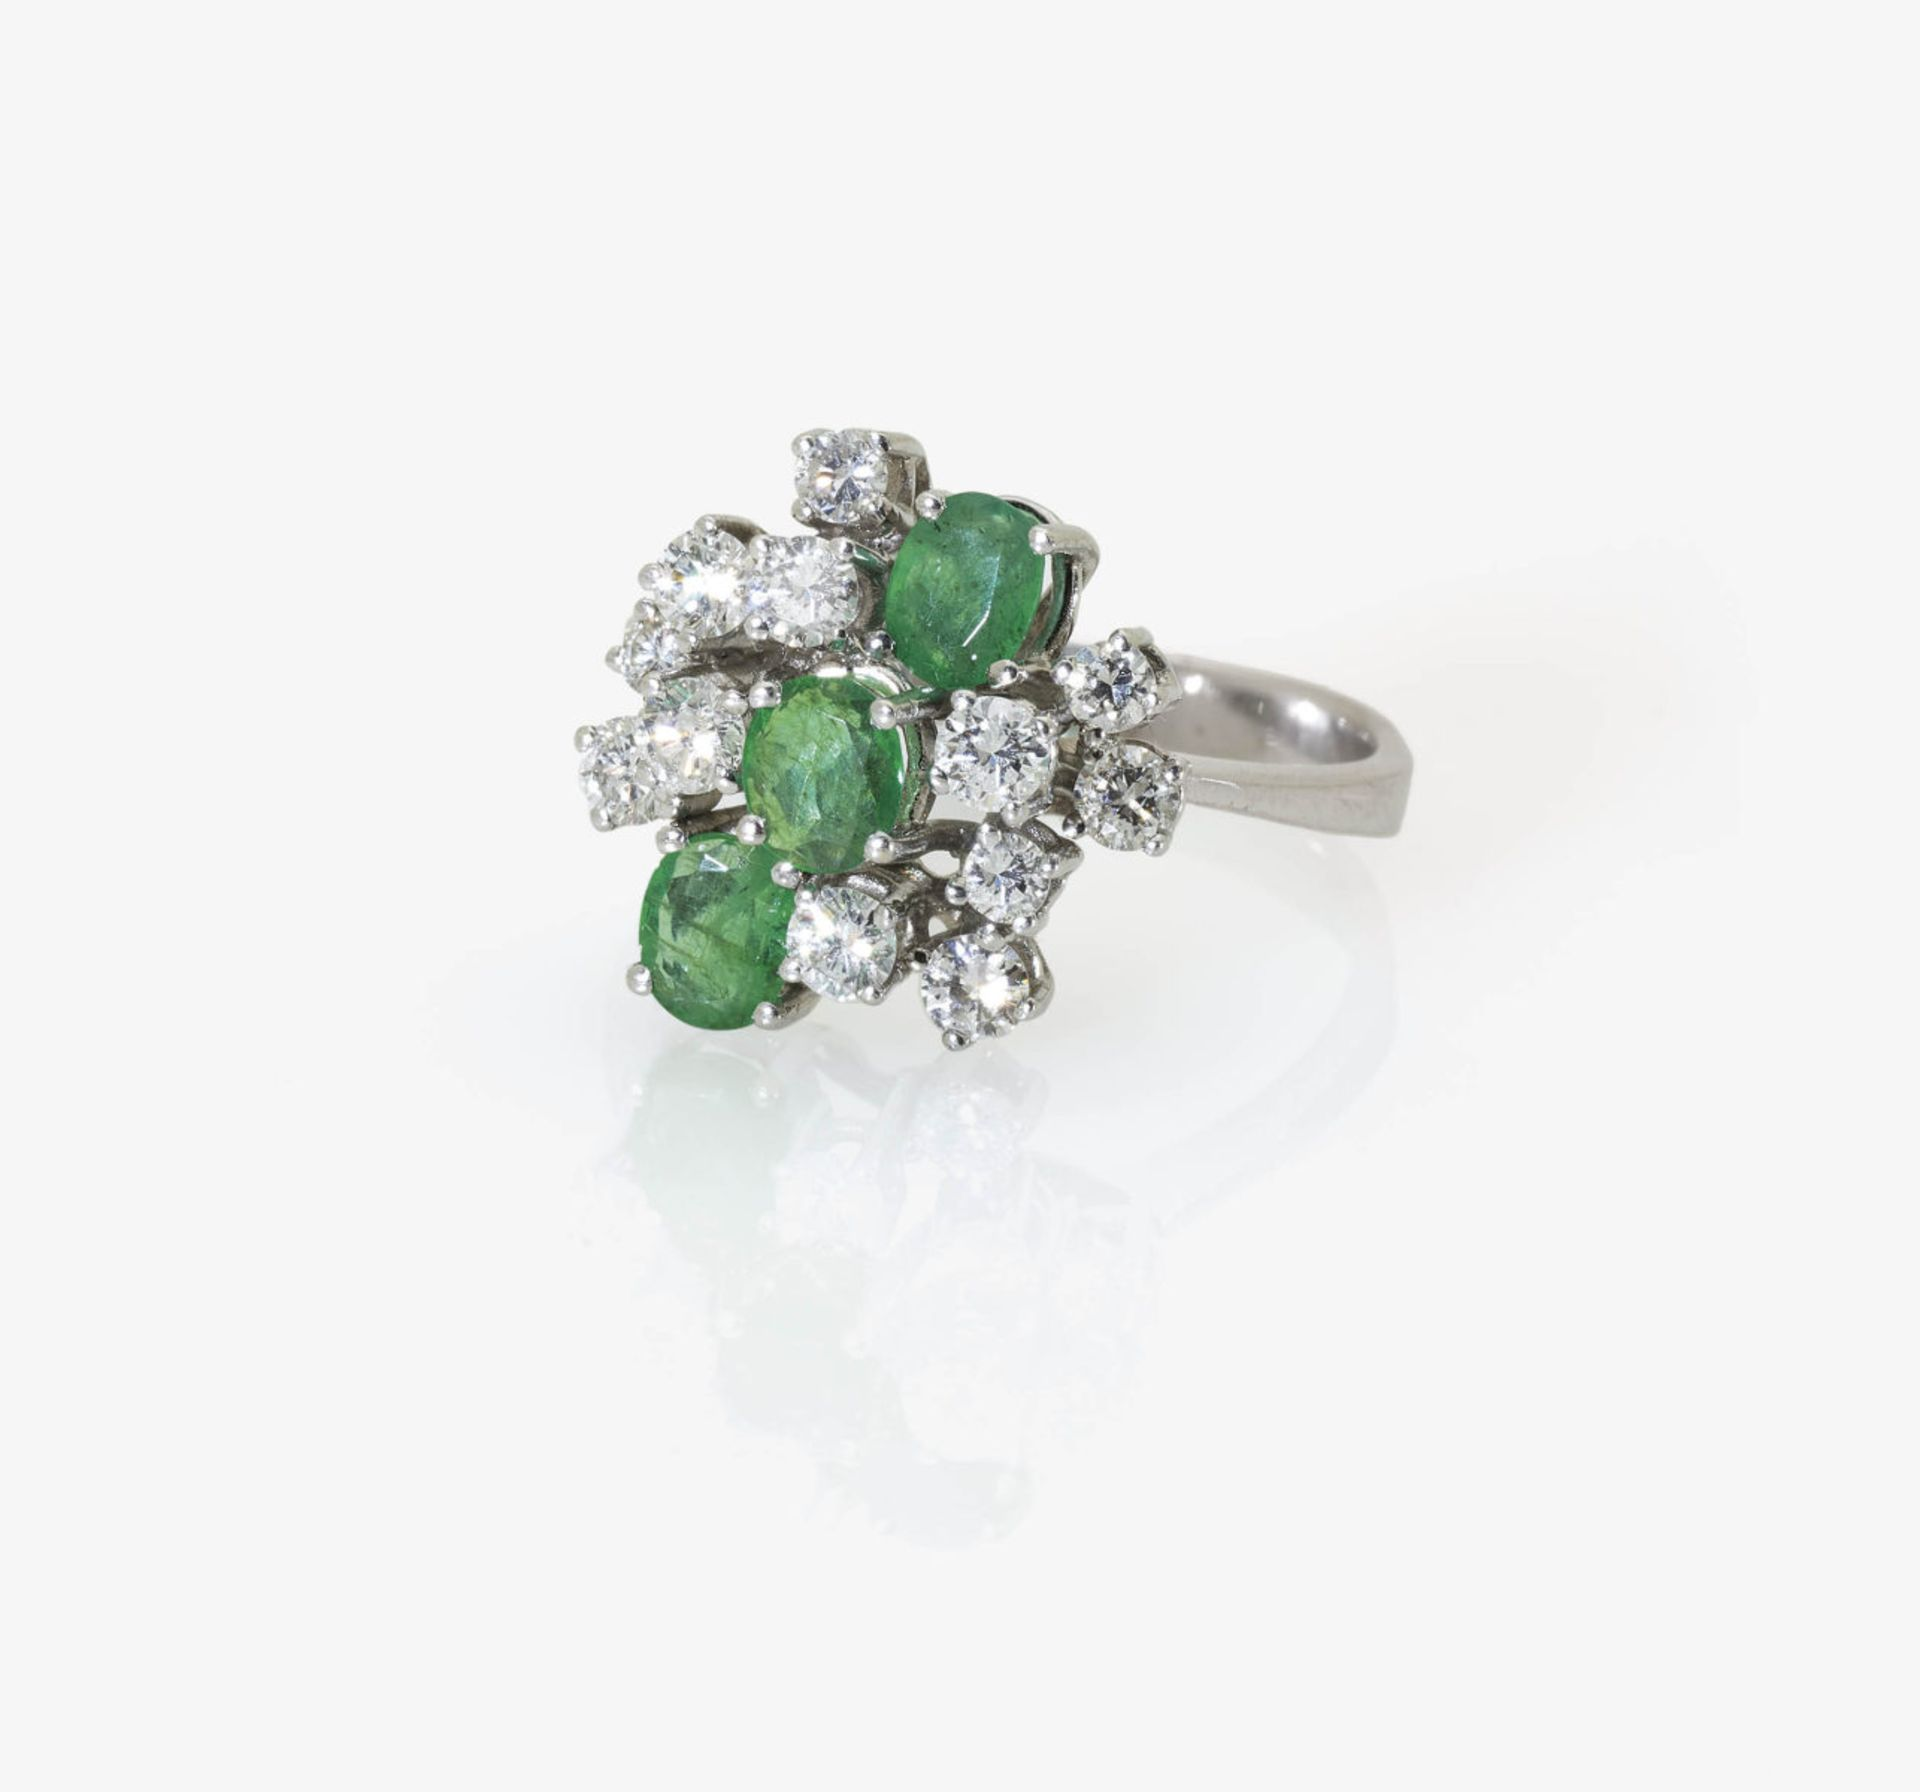 Los 1059 - An Emerald and Diamond Cocktail Ring